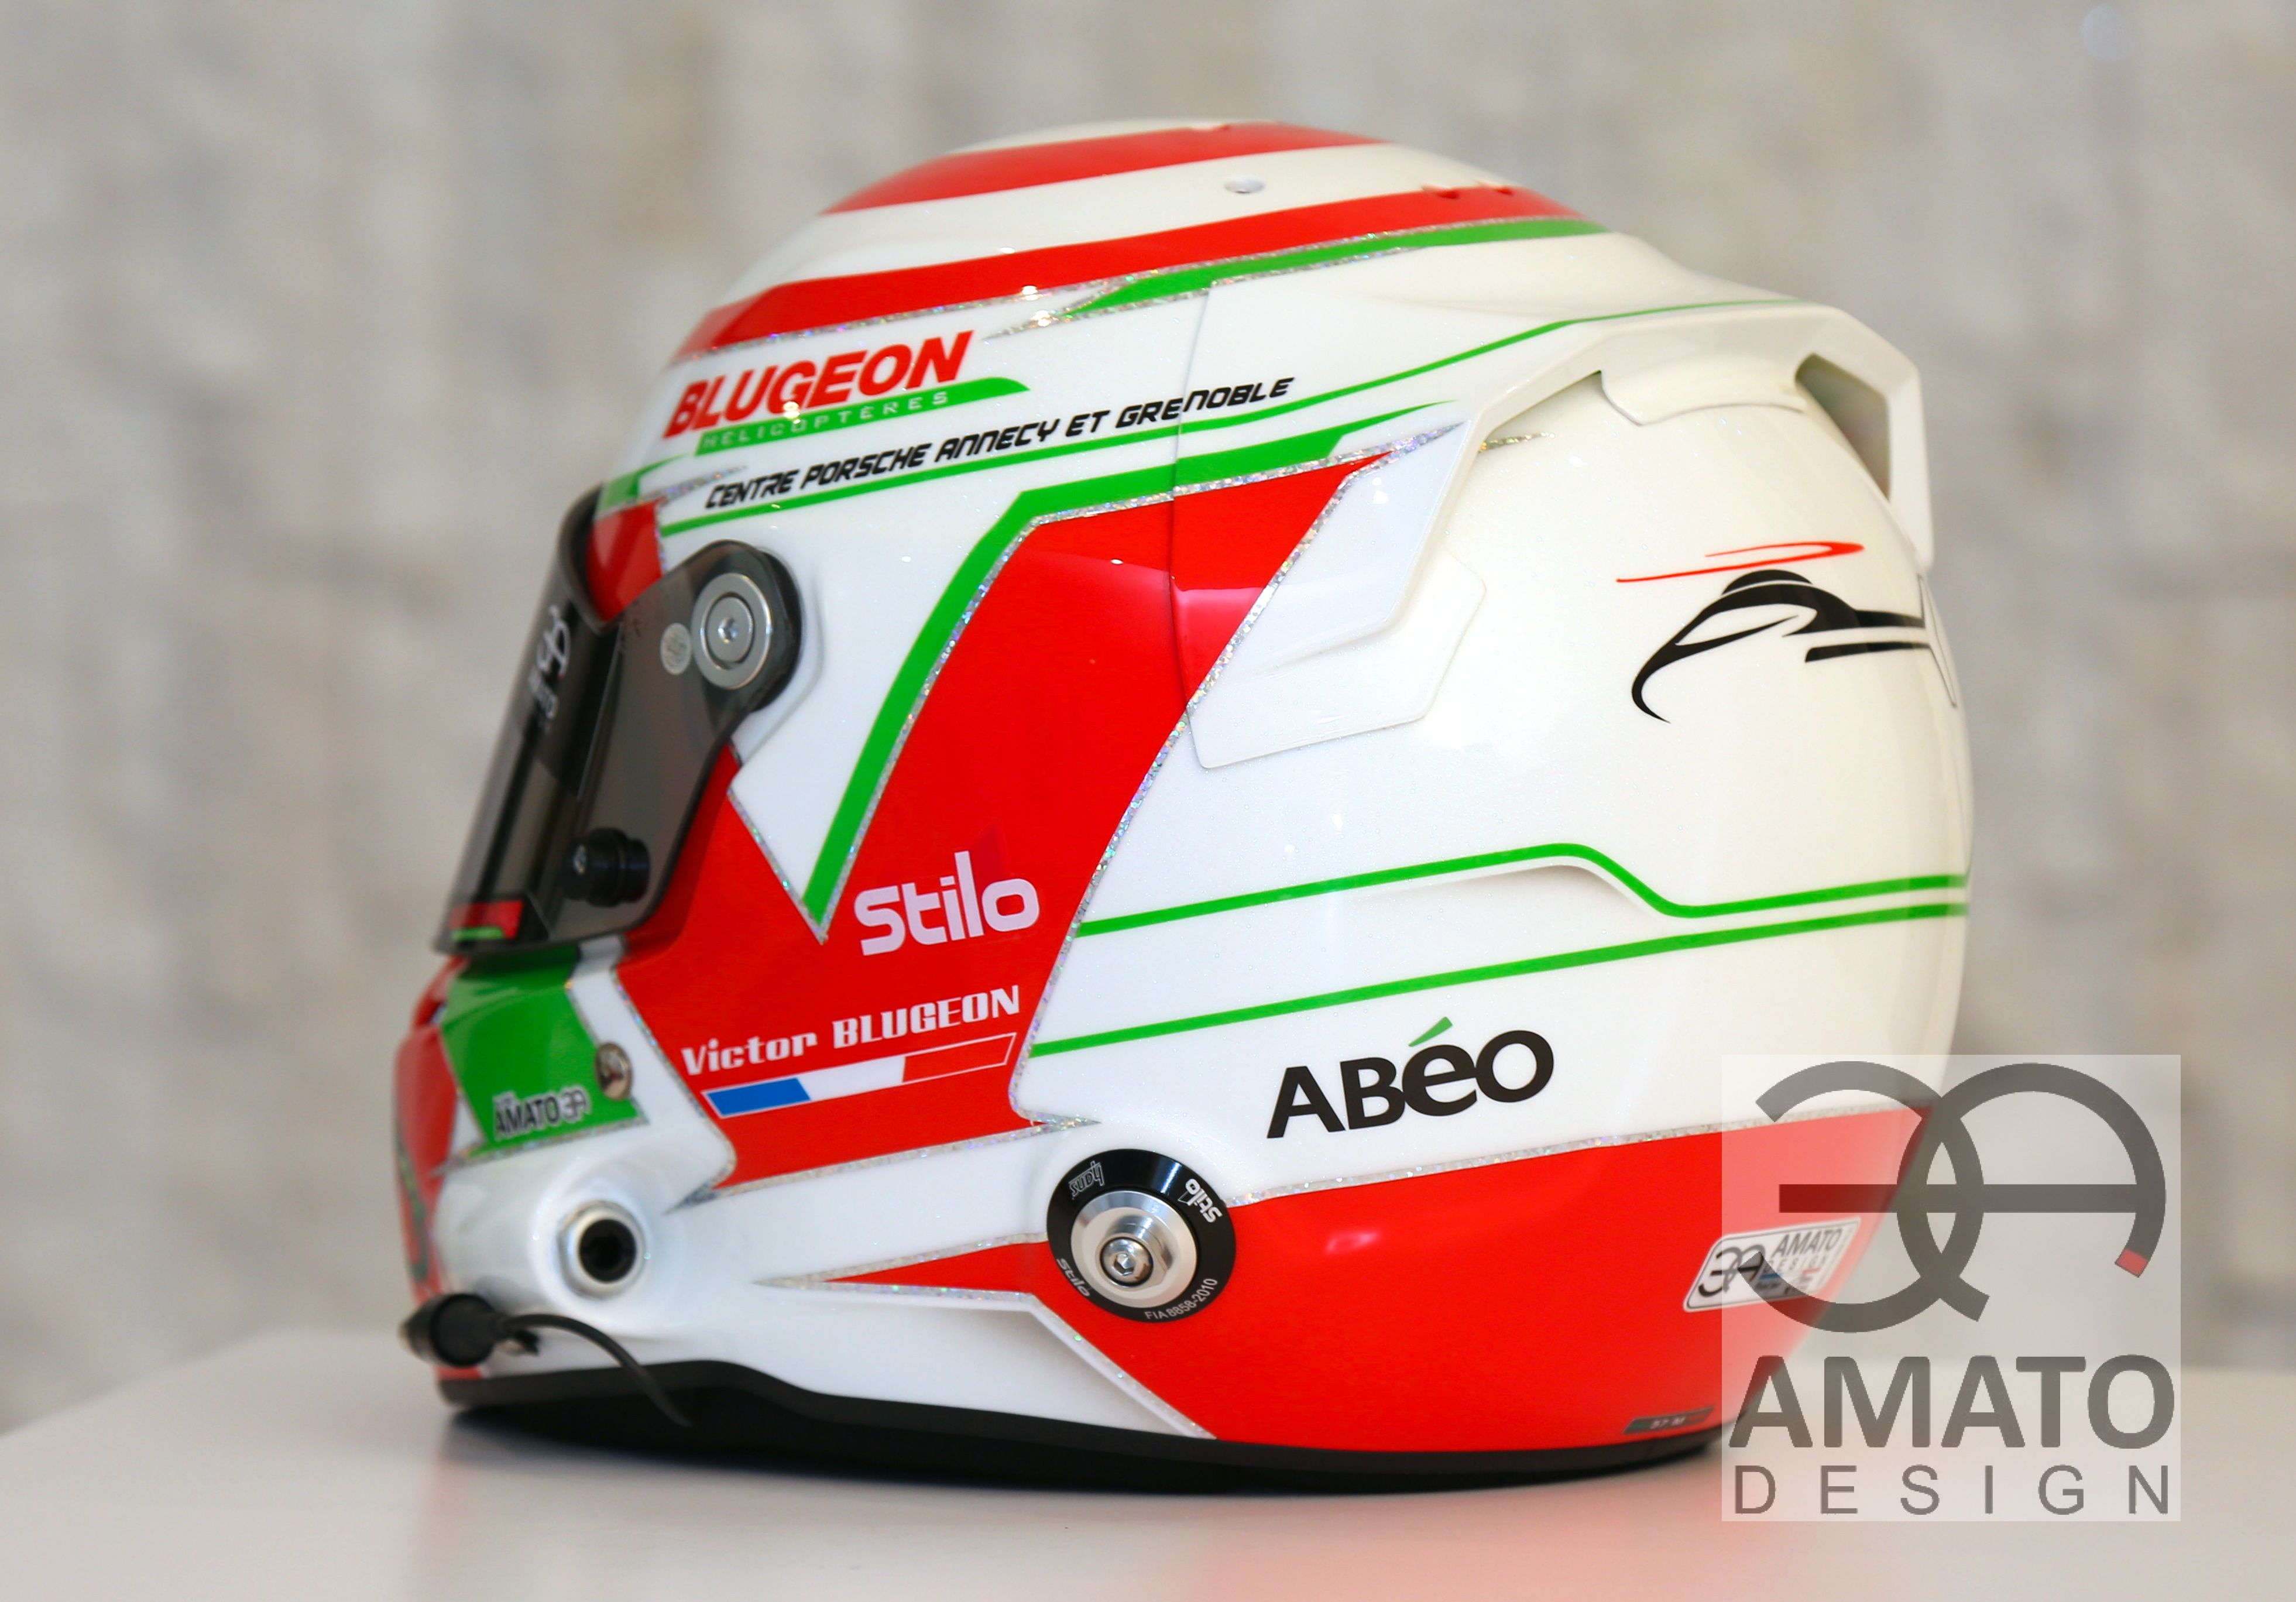 CASQUE AMATO DESIGN - VICTOR BLUGEON